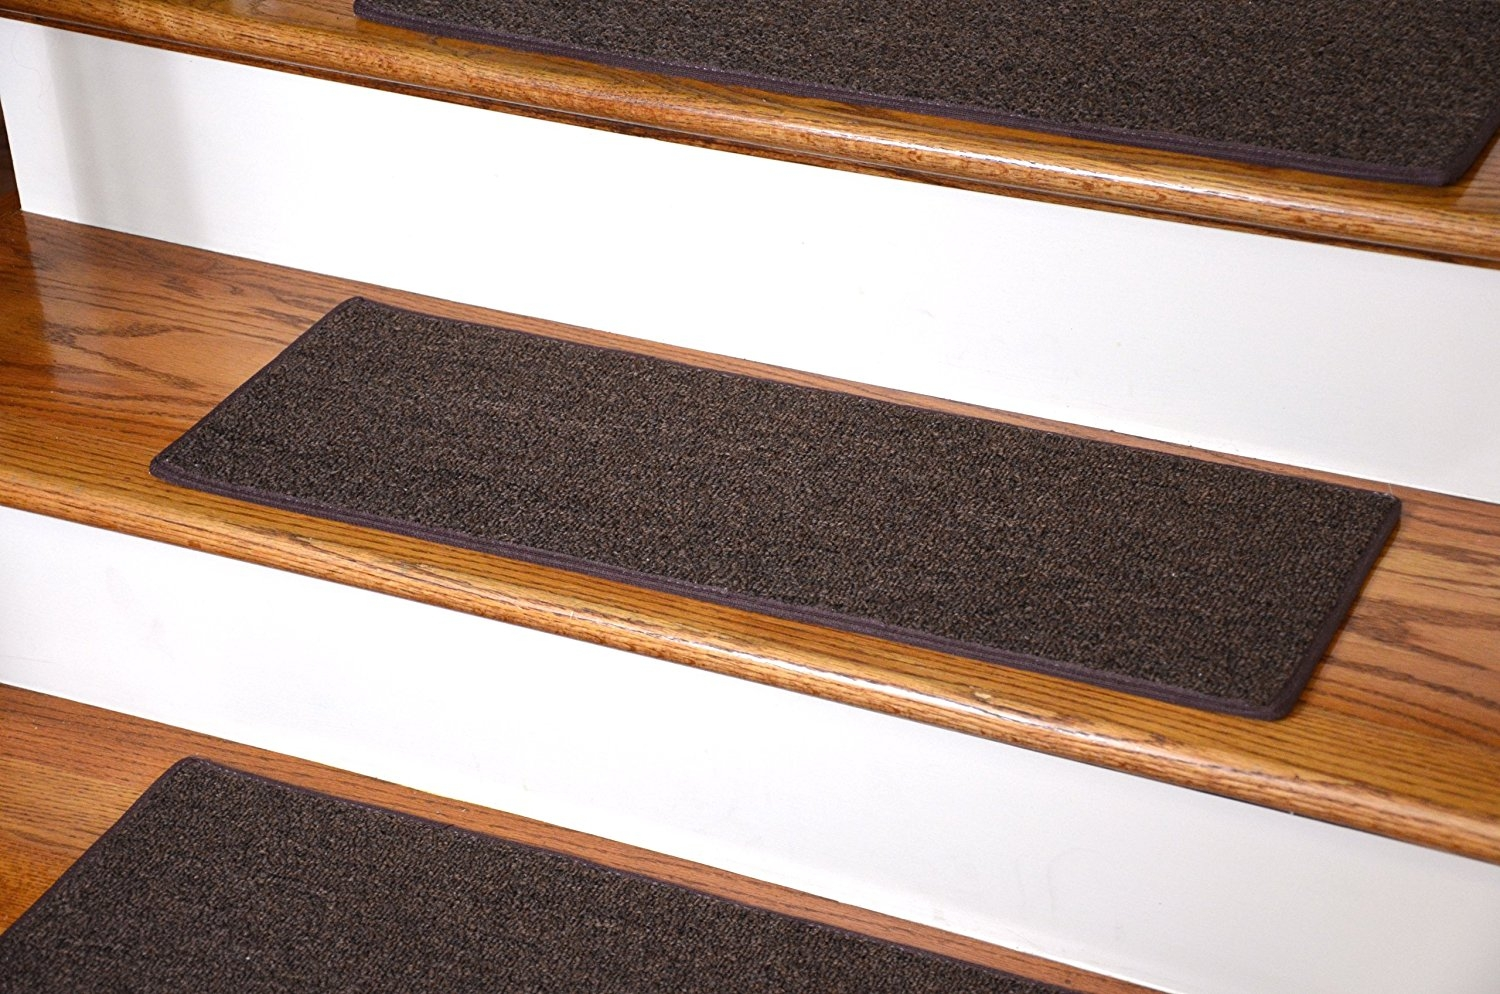 Dean Non Slip Tape Free Pet Friendly Diy Carpet Stair Treadsrugs With Regard To Non Skid Stair Tread Rugs (#4 of 20)